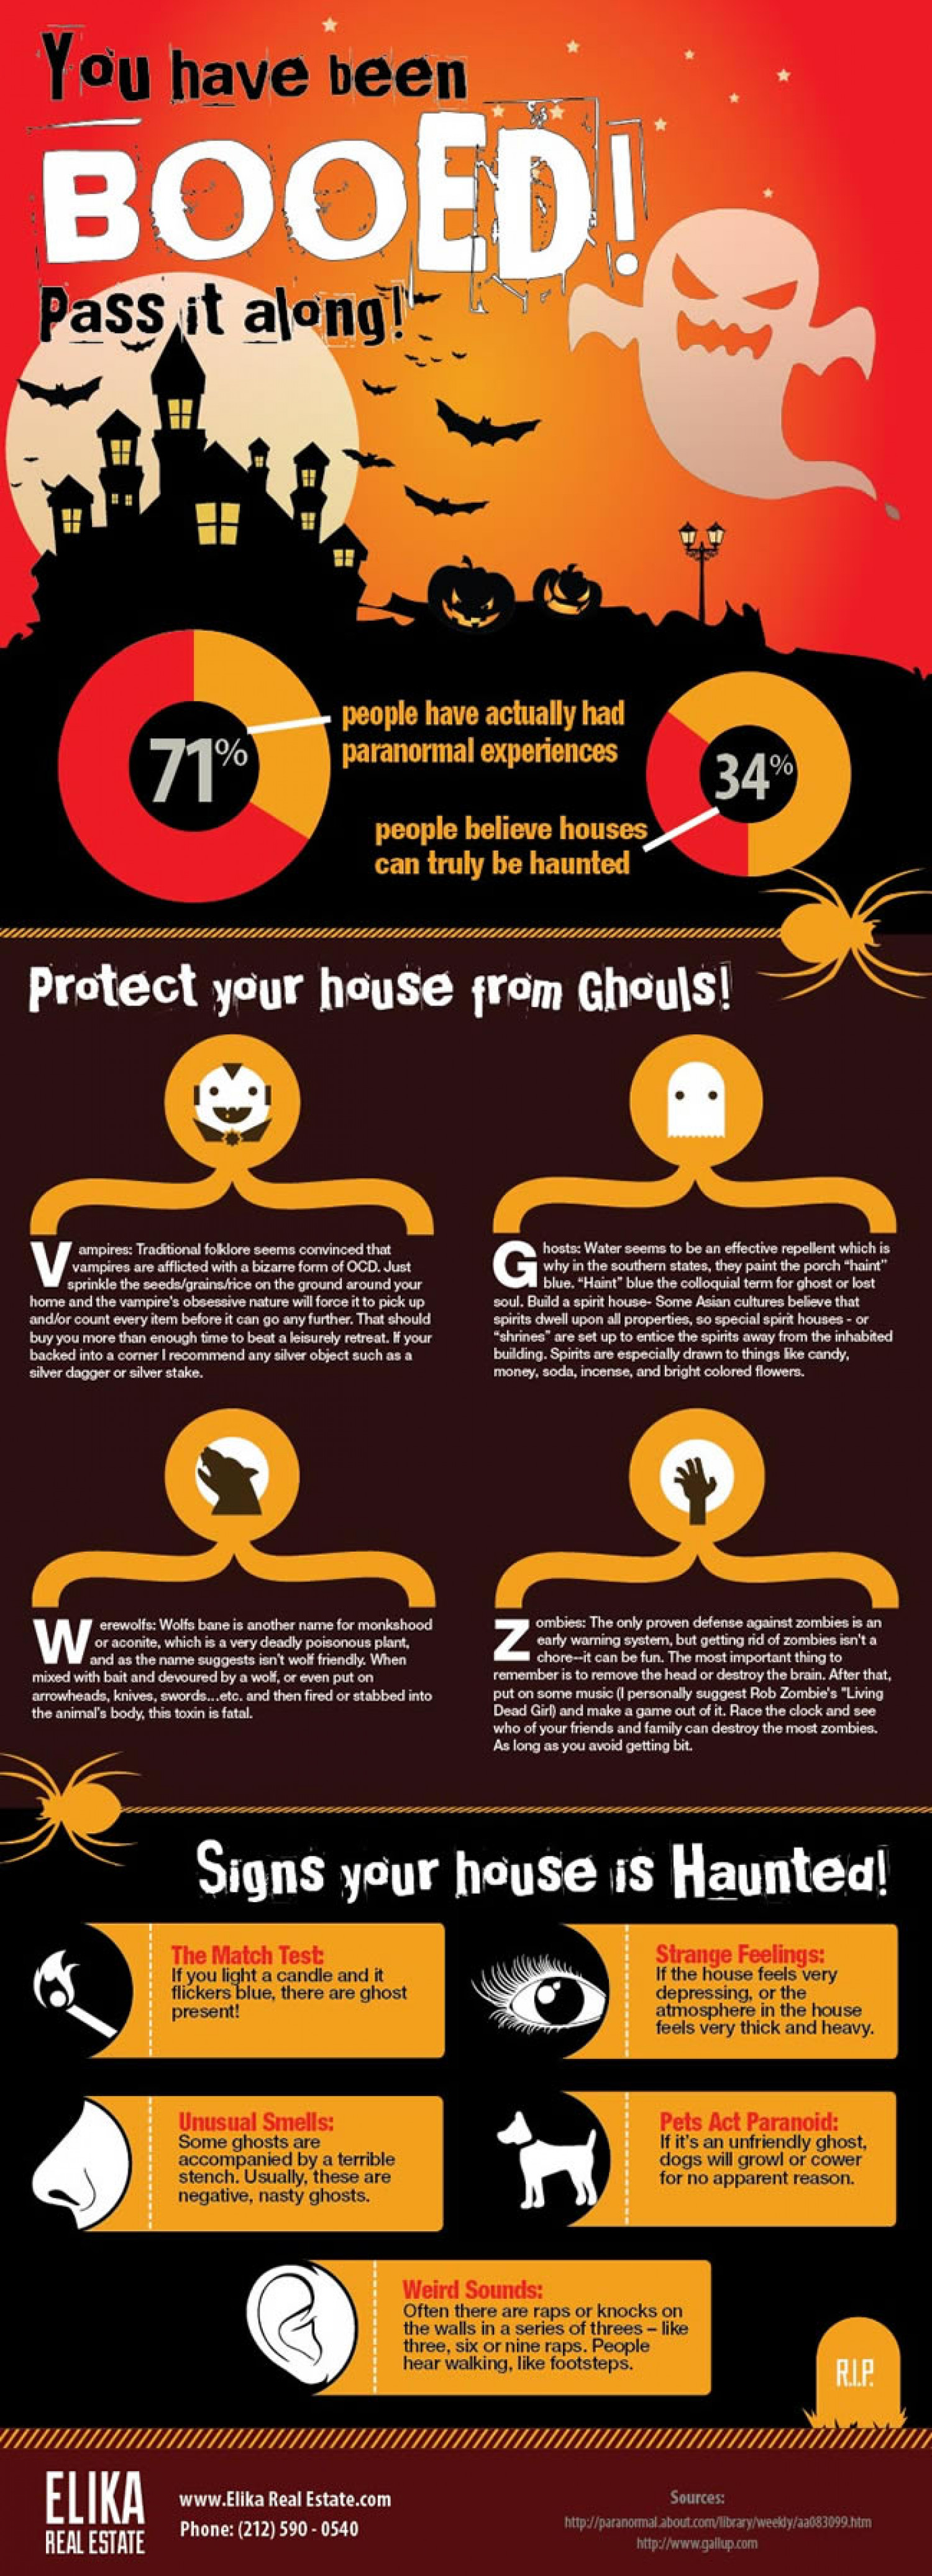 Signs Your House is Haunted Infographic